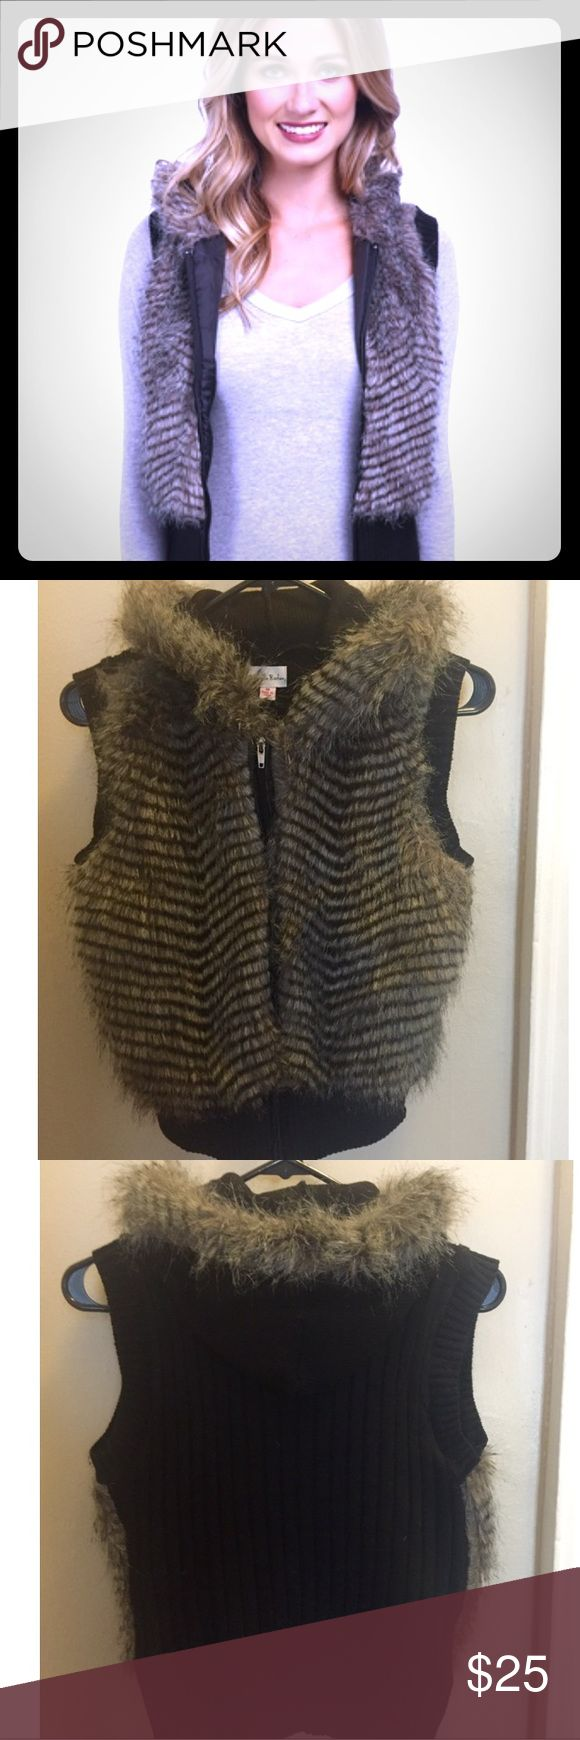 Gabriella Rocha Hooded Faux Fur Vest Too cute! Hooded, zip-up fur vest by Gabriella Rocha! The back is a sweater type material. Never been worn, in perfect condition! Women's Medium (could also fit a small) *Smoke-Free Home* Feel free to make an offer : ) Gabriella Rocha Jackets & Coats Vests